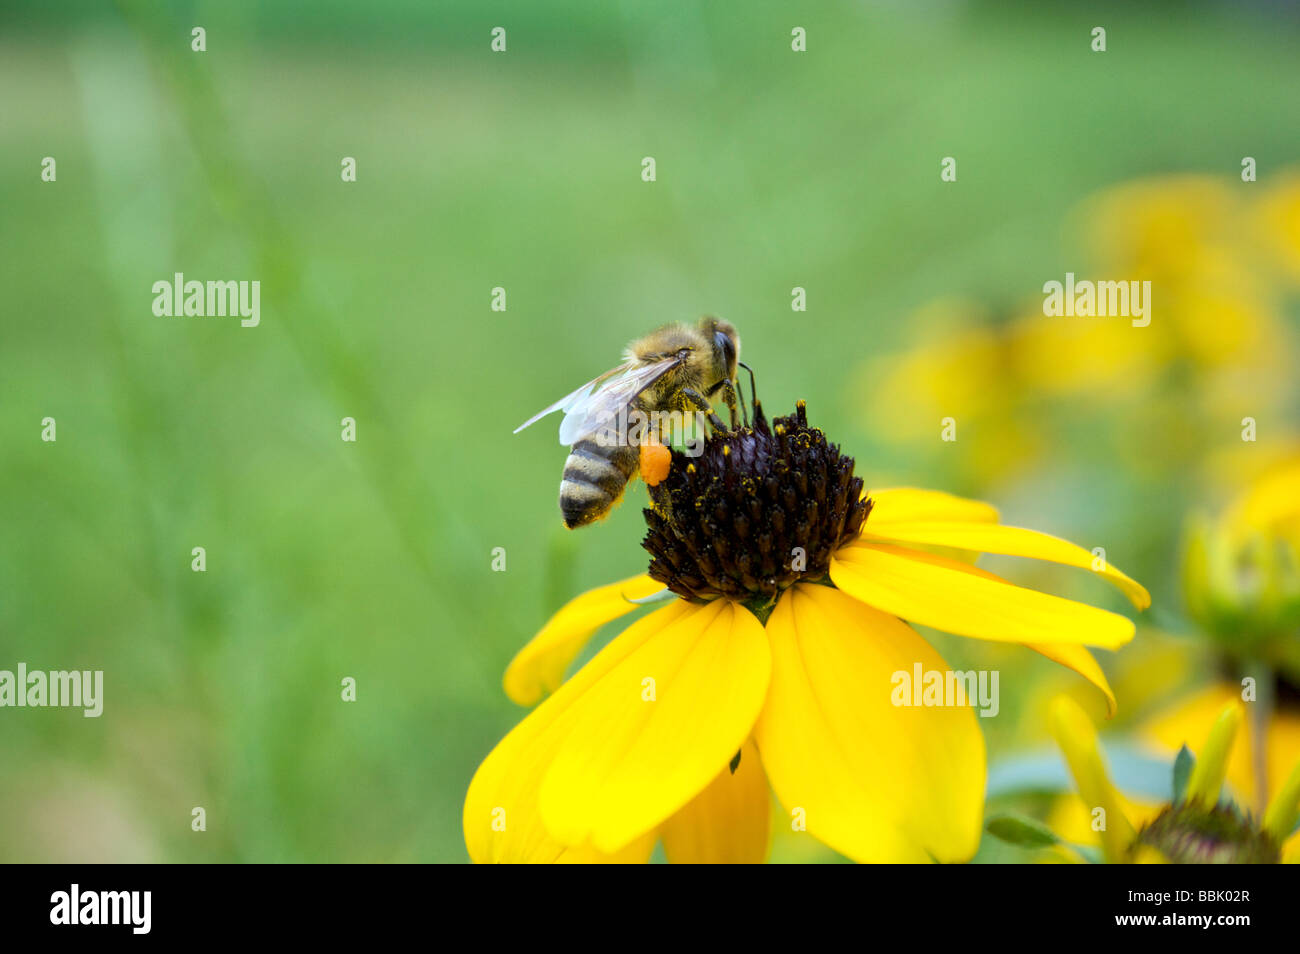 Honeybee Apis mellifera landing on a flower on a summer afternoon. bee, flower, green, nature, insects, landing, - Stock Image